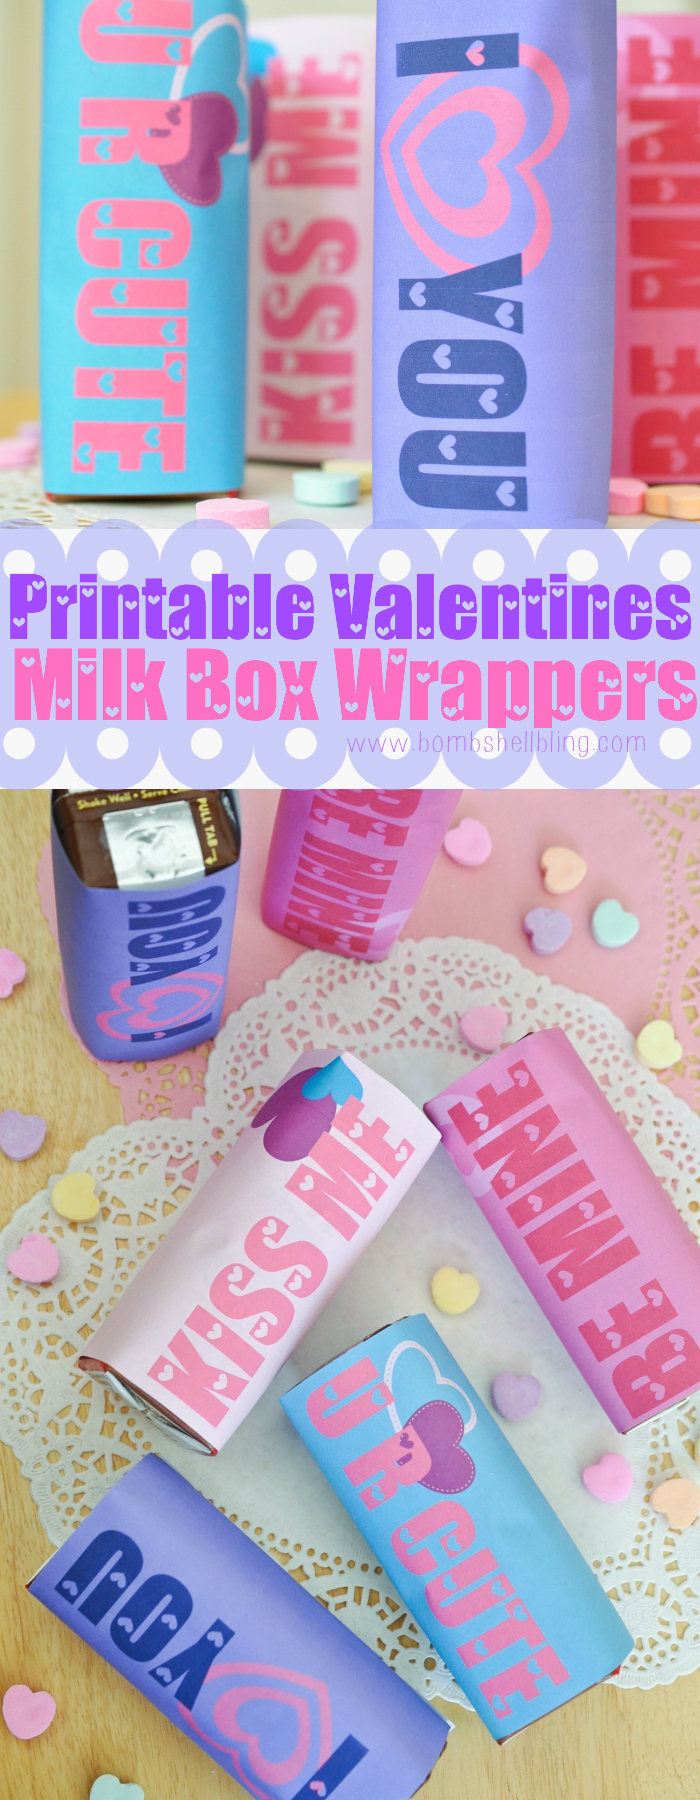 FREE Printable Valentine's Day Milk Box Wrappers